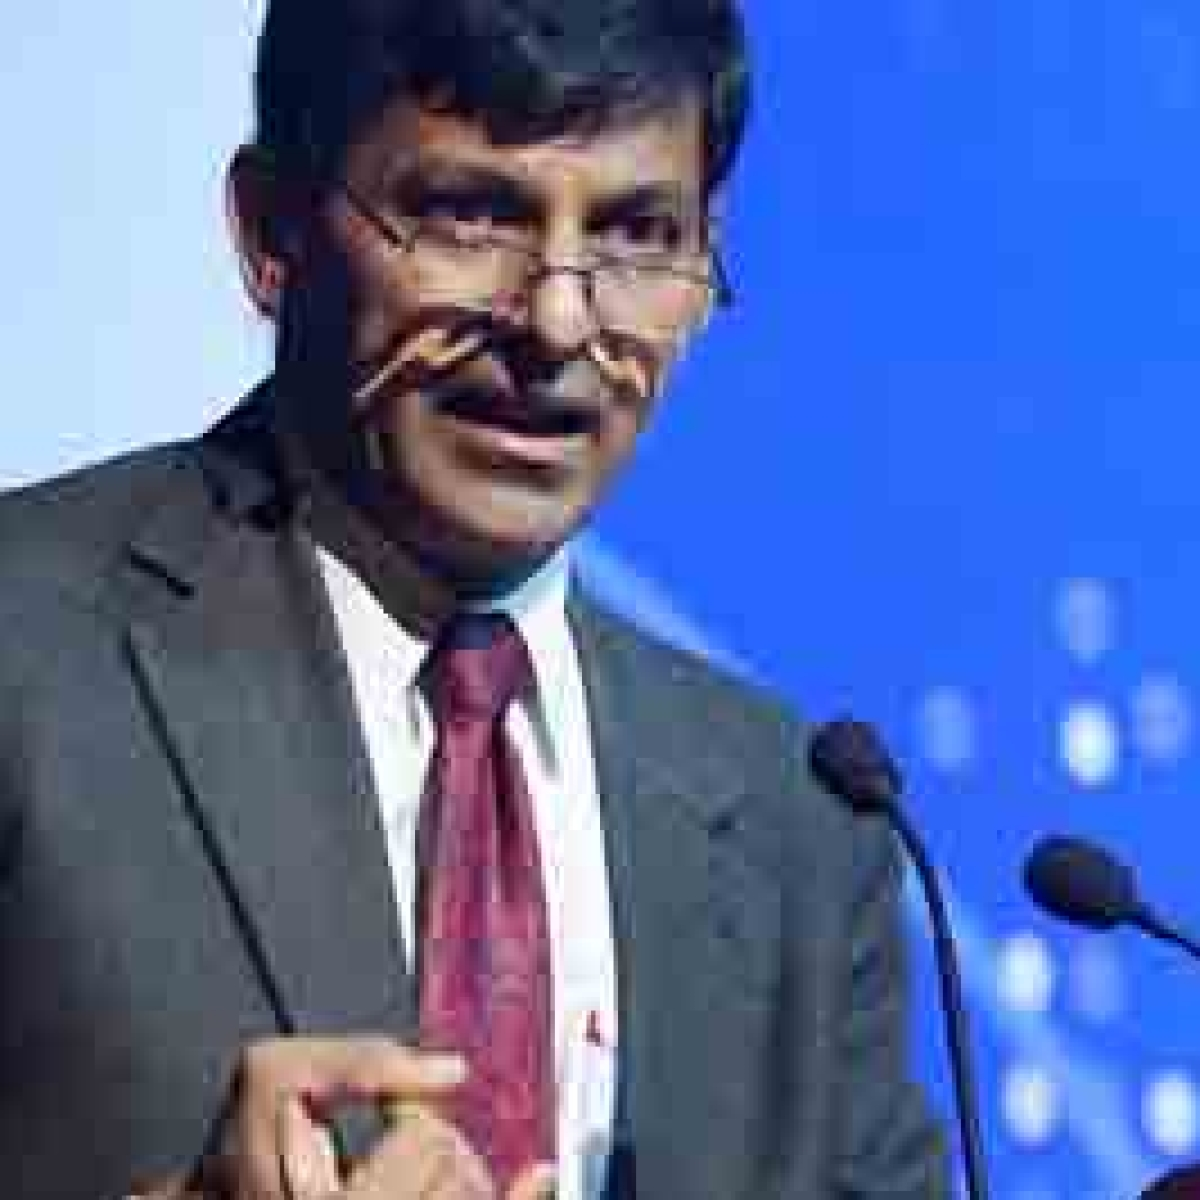 'India has slowed considerably from the go-go years'